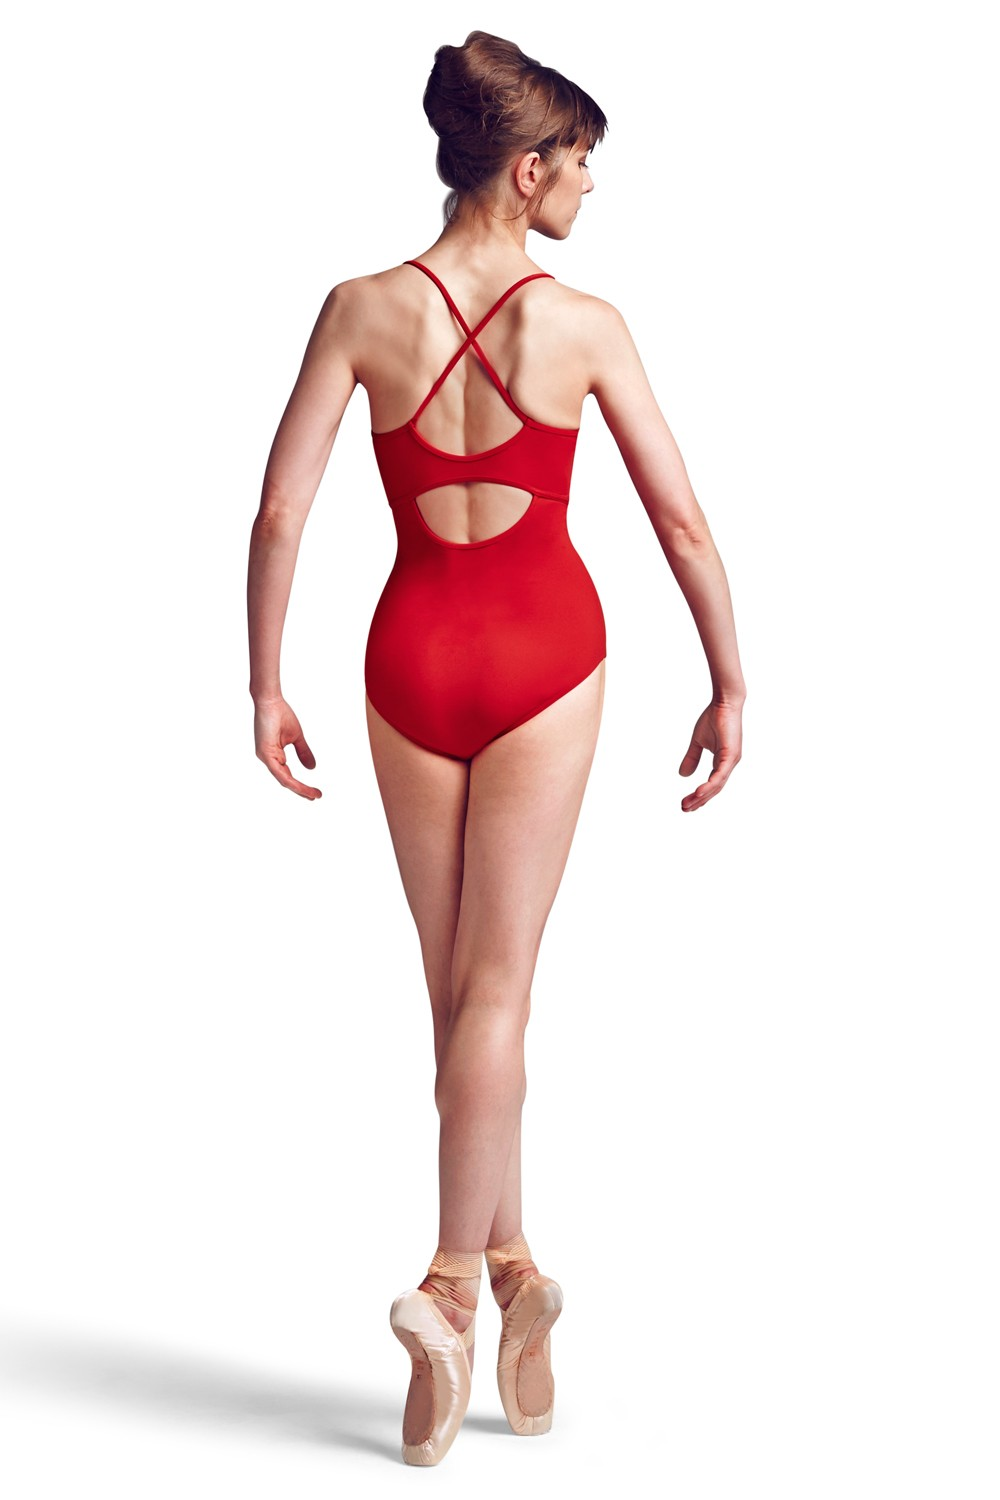 Rouleaux Front Camisole Women's Dance Leotards